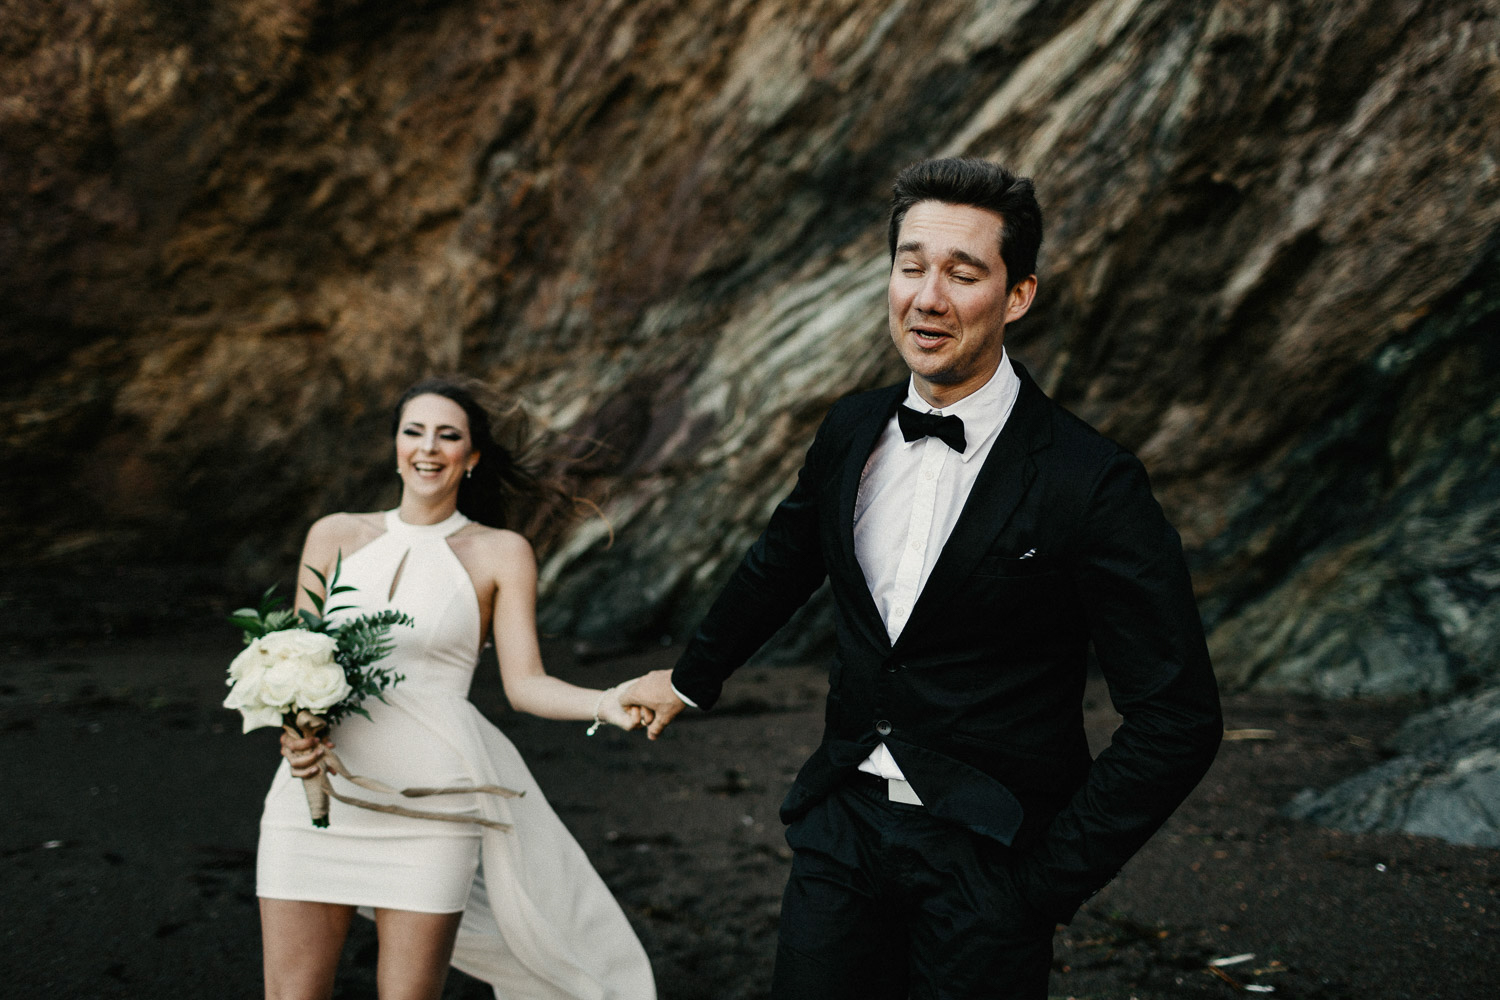 Image of groom leads bride to walk on beach